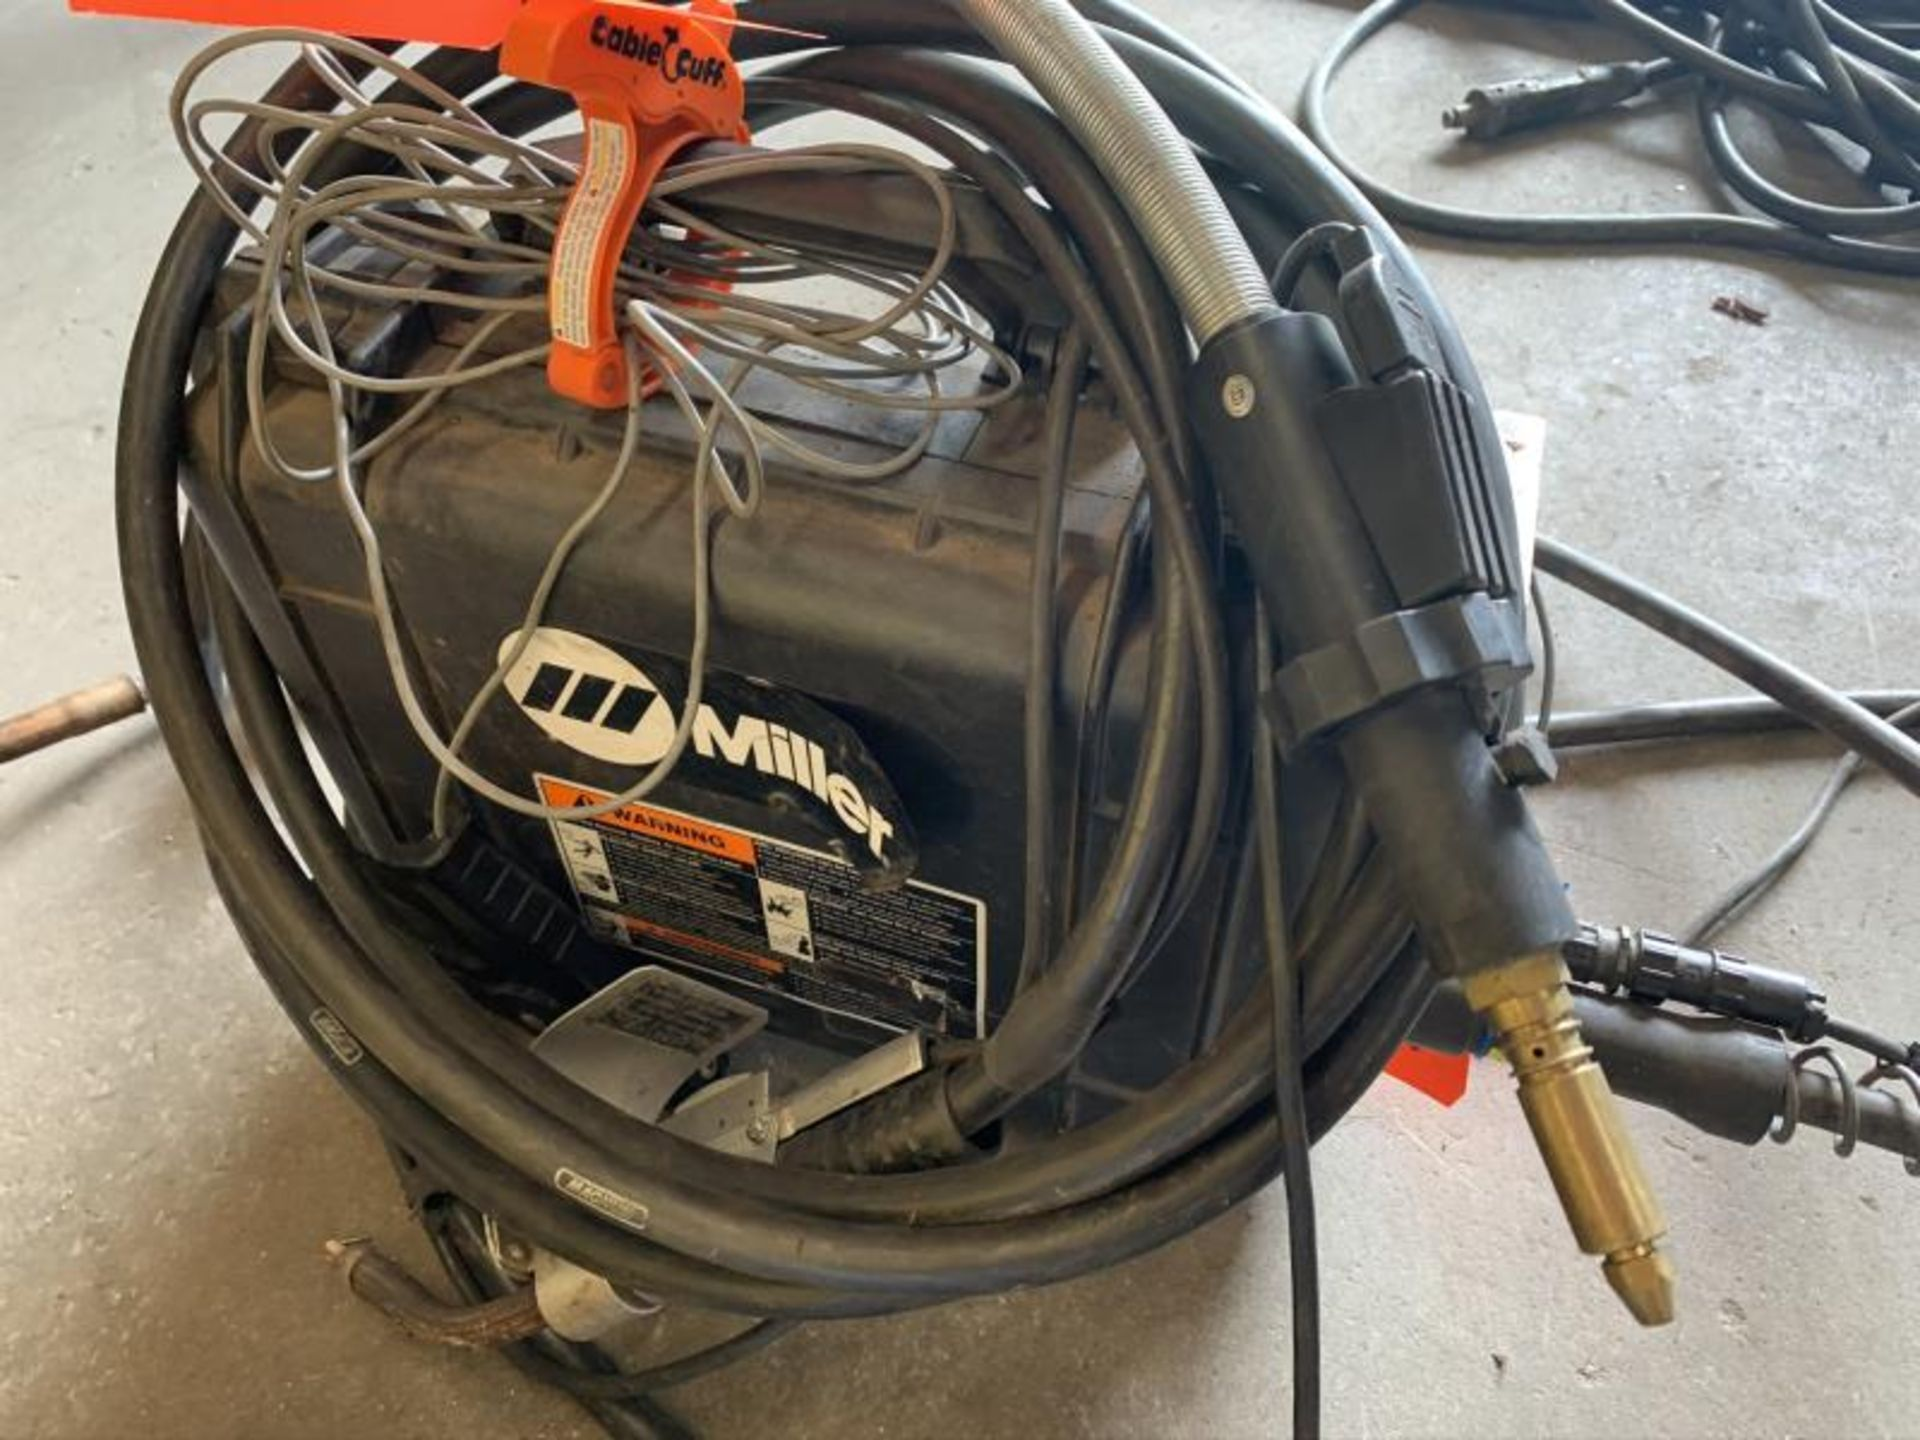 Lot 18 - Miller Suitcase 8VS voltage sensing feeder with gas shielding mig cable